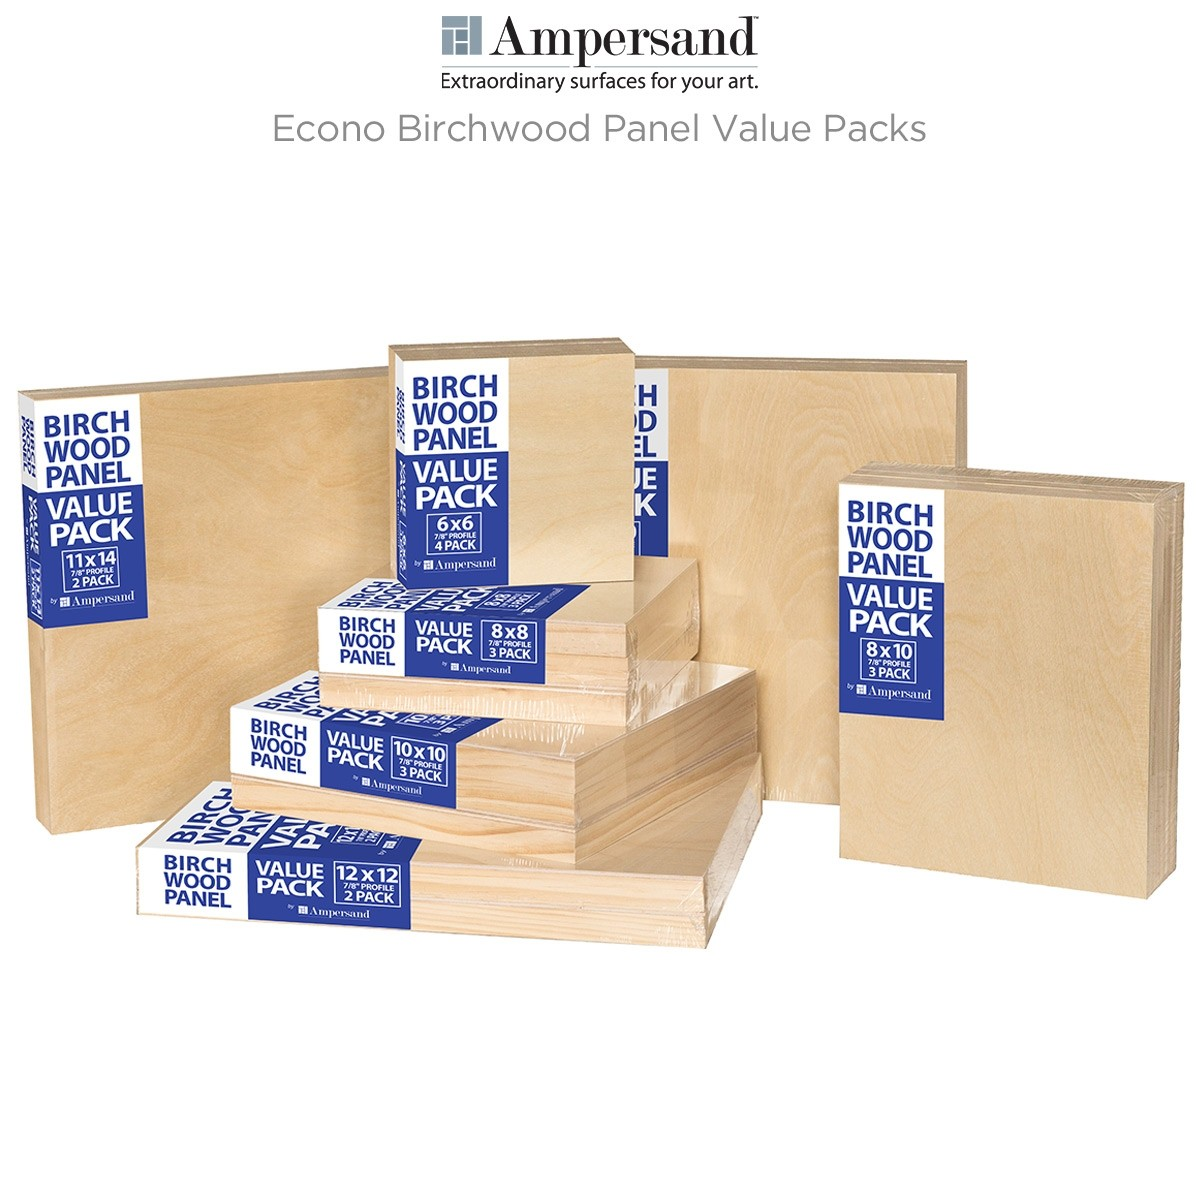 Ampersand Econo Birchwood Panel Value Packs